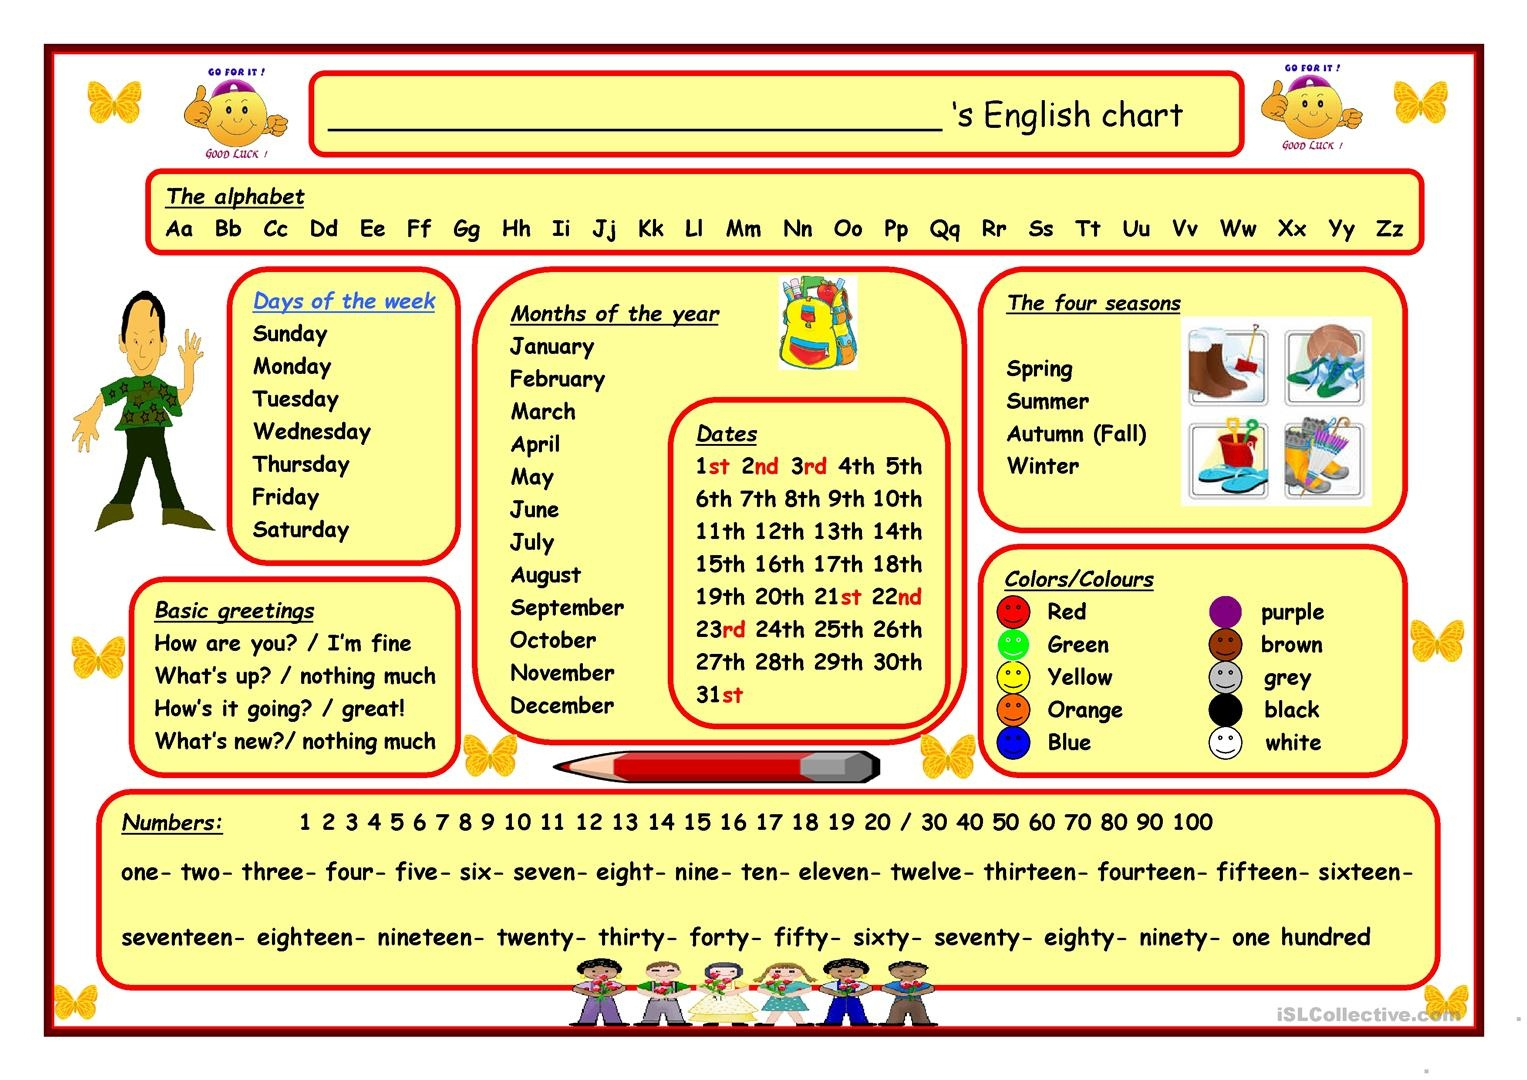 English (Wall) Chart Worksheet - Free Esl Printable Worksheets Made - Free Printable Months Of The Year Chart